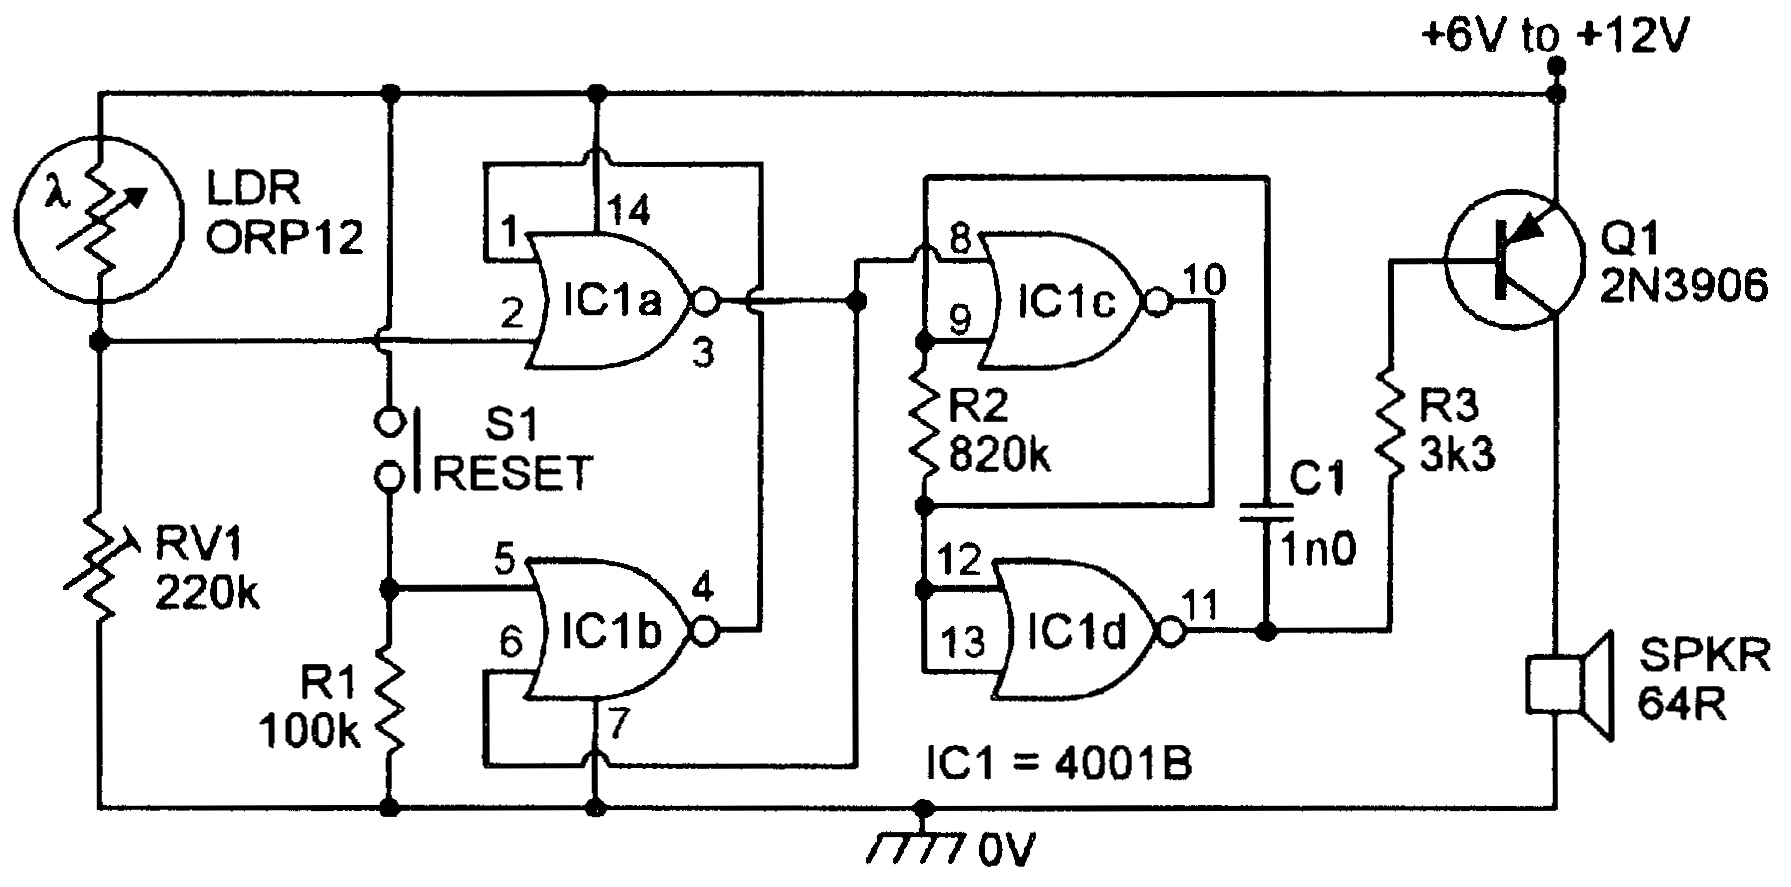 Light Sensitive Circuits Nuts Volts Magazine Improved Infrared Detector Circuit In Practice The Switching Point Of Each Individual 4001b Ic Is Very Stable And Figure 7 Gives Activated Alarm